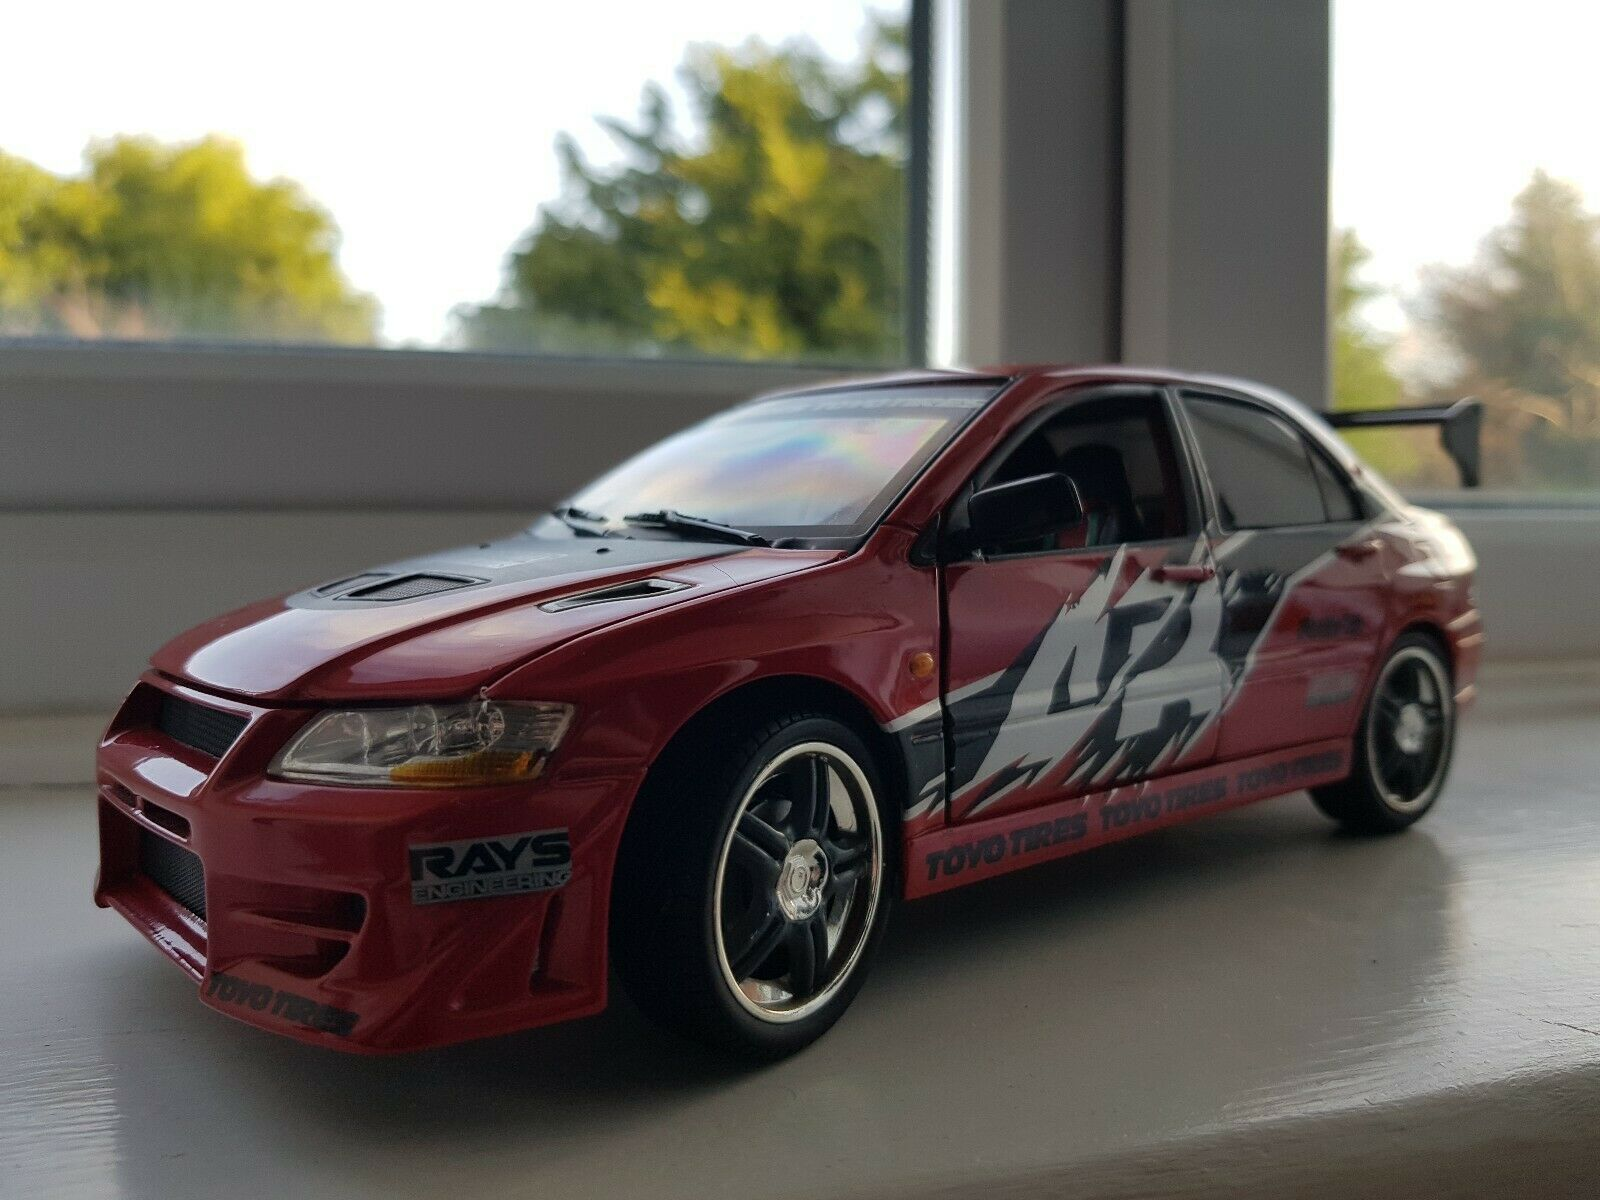 ERTL Racing Champions Fast and Furious Spielzeugko Drift Evo 1 18